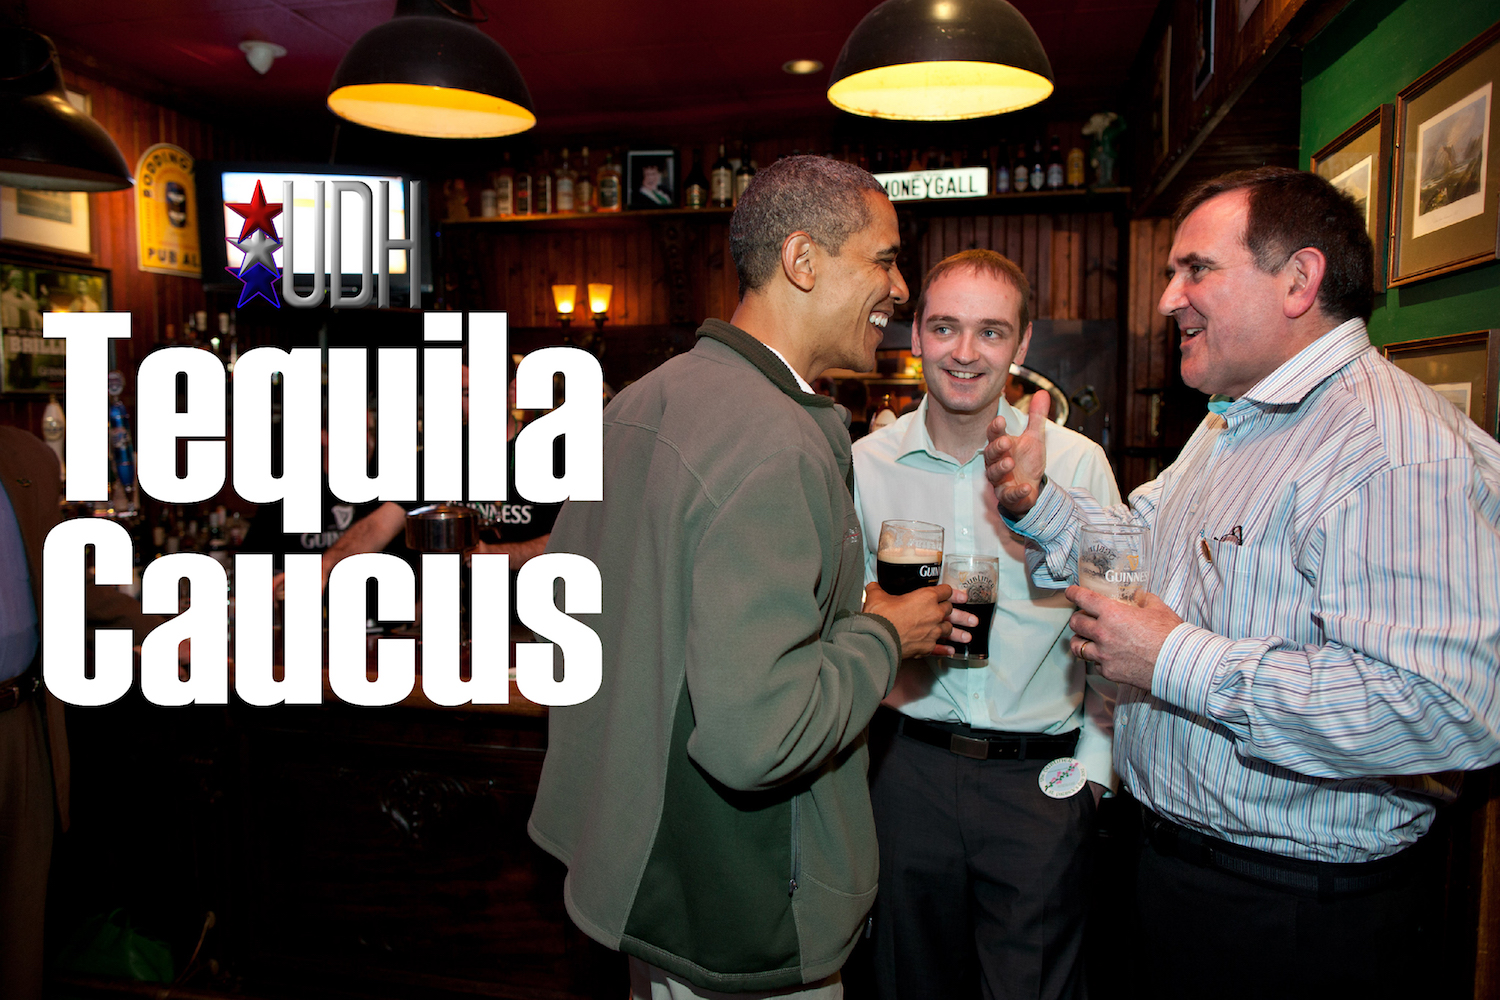 UDH_Tequila_Caucus.jpg